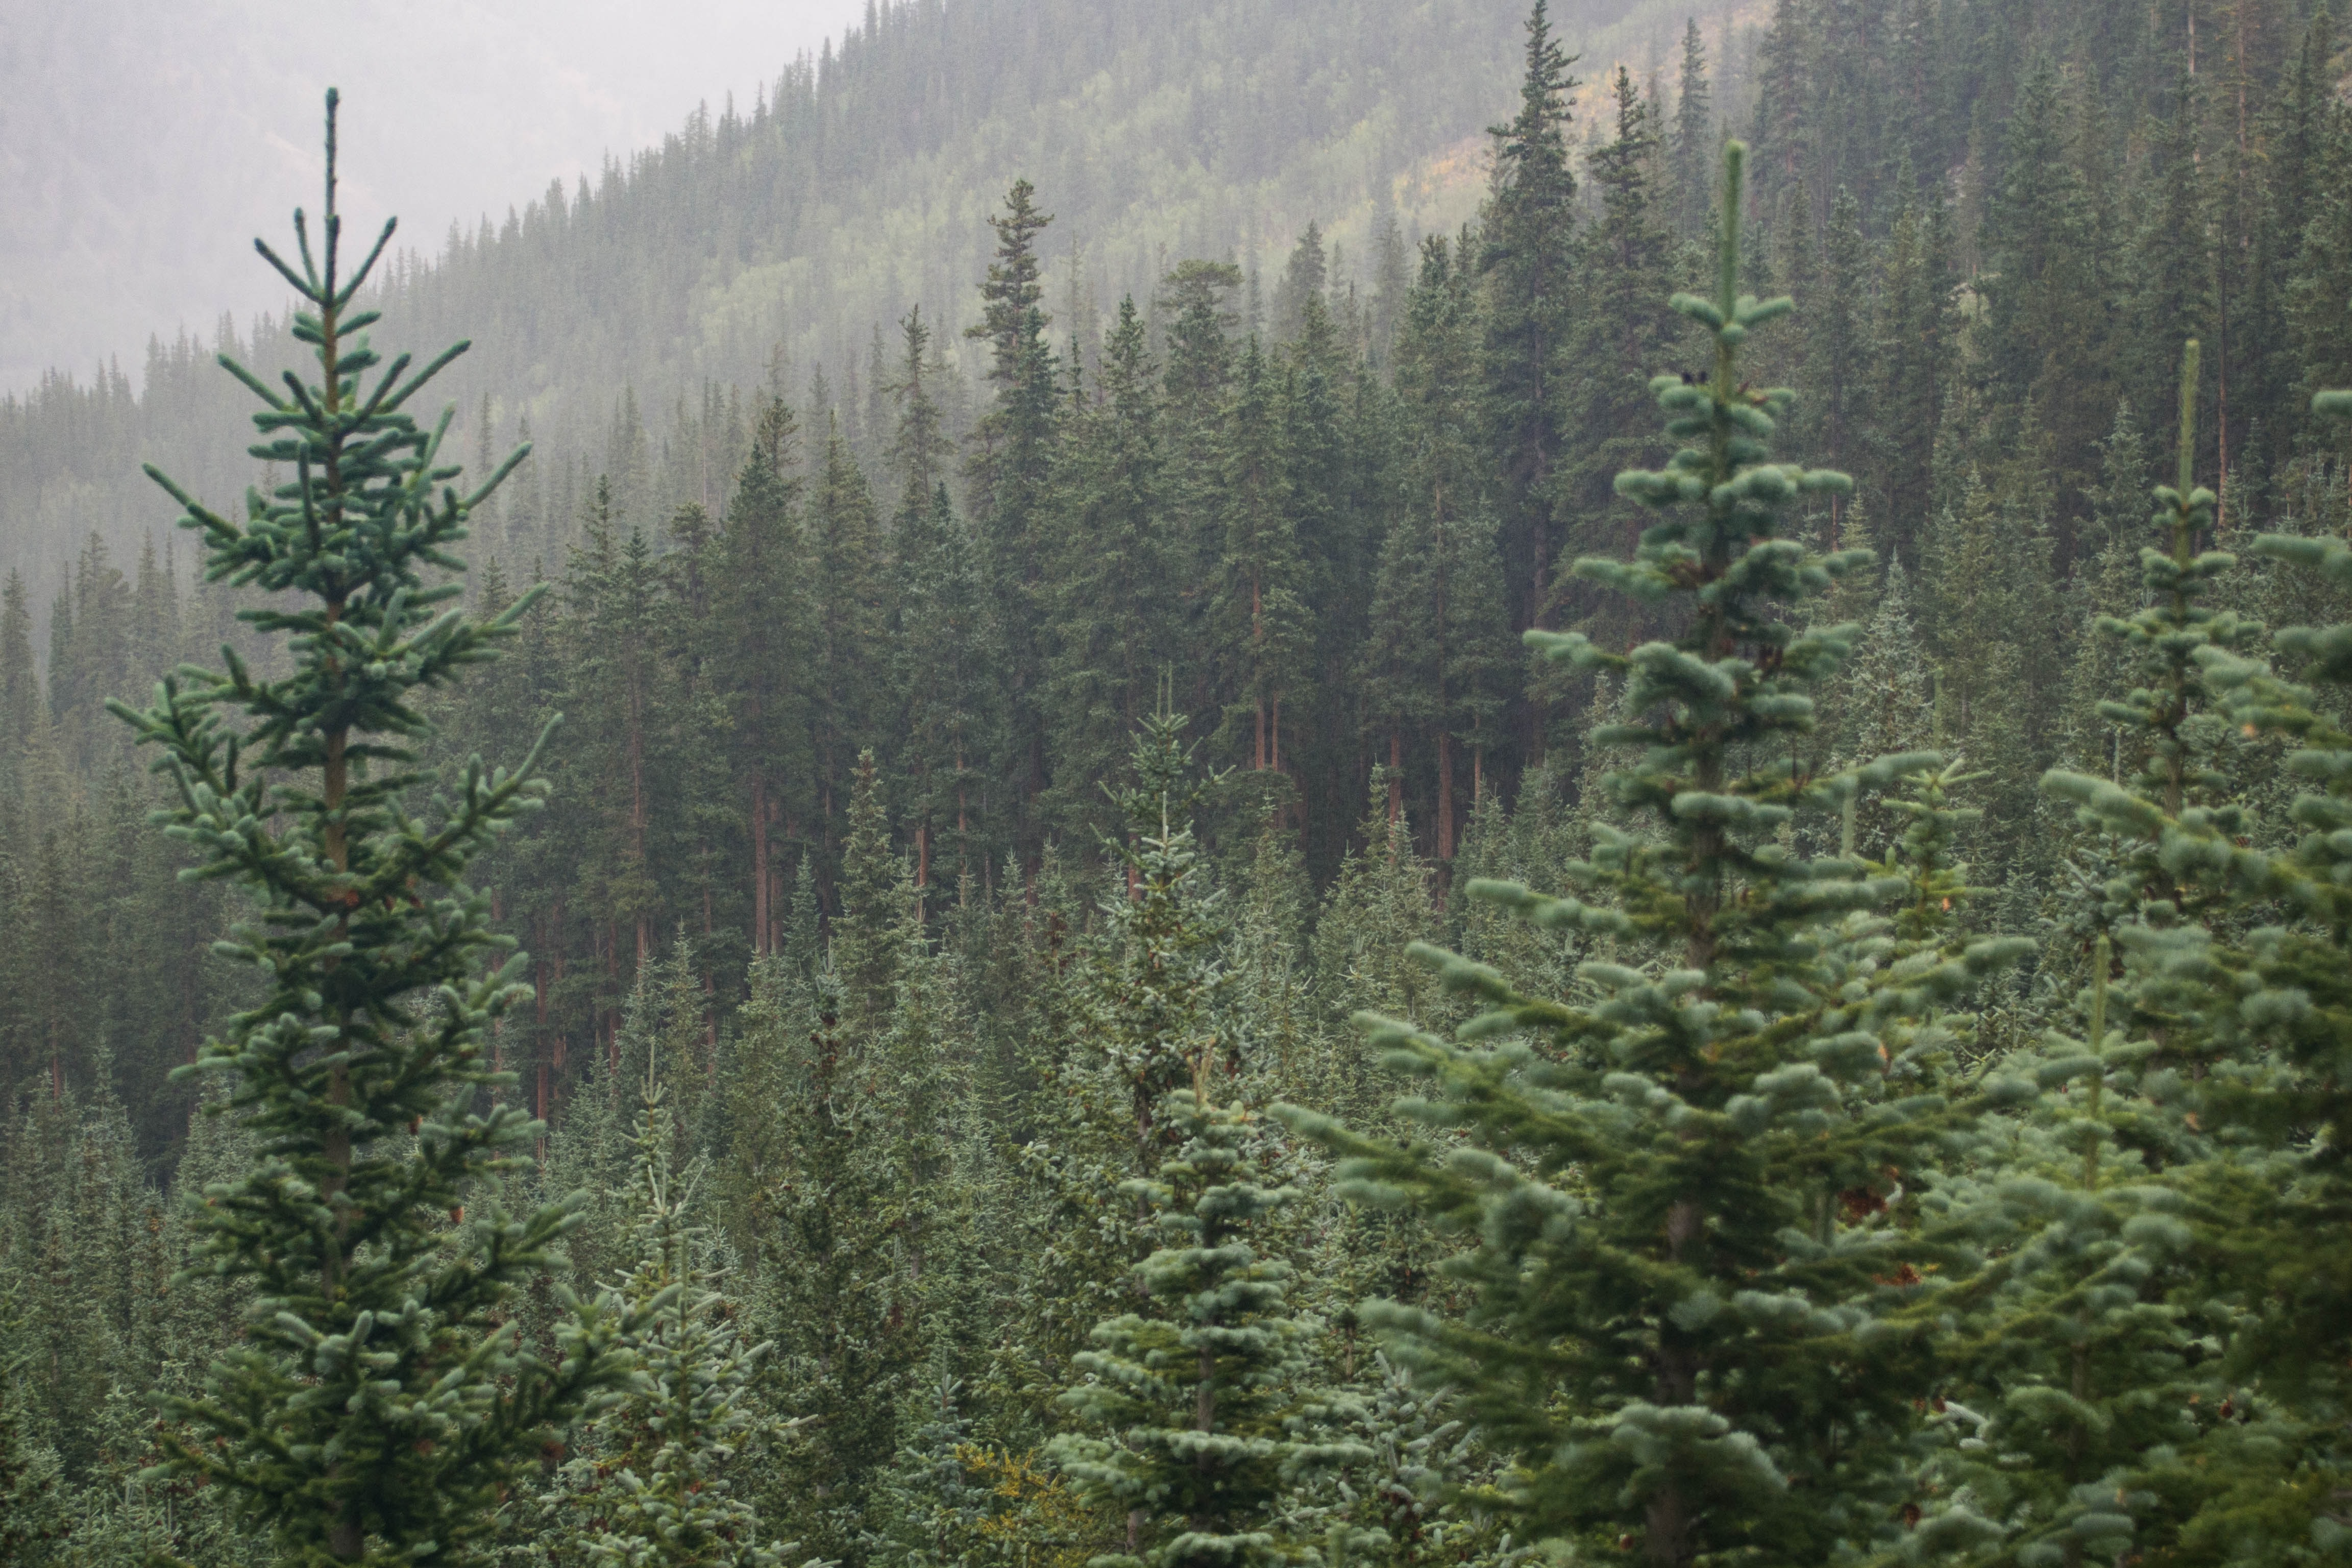 Tall coniferous trees in a forest near Mount Belford